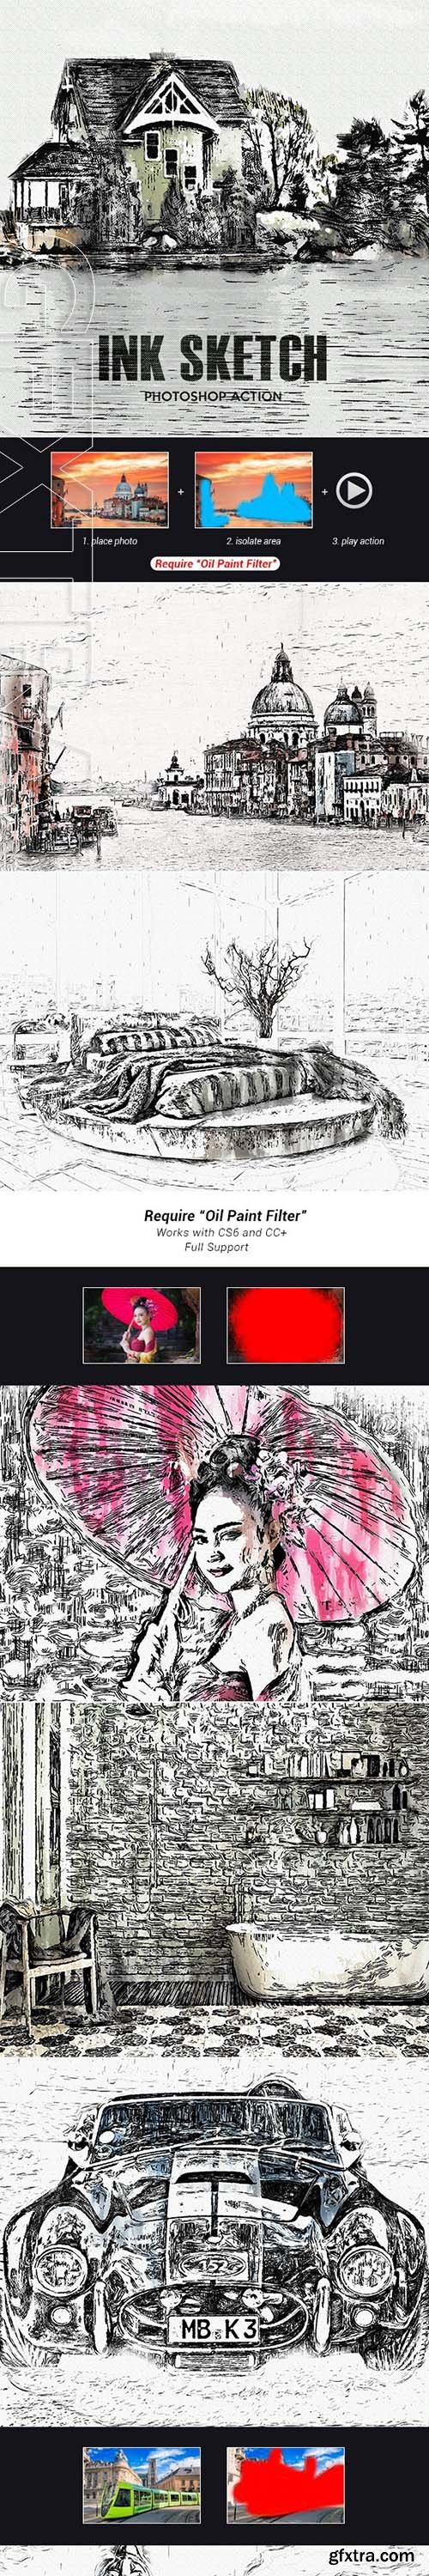 GraphicRiver - InkSketch - Photoshop Action 24747552